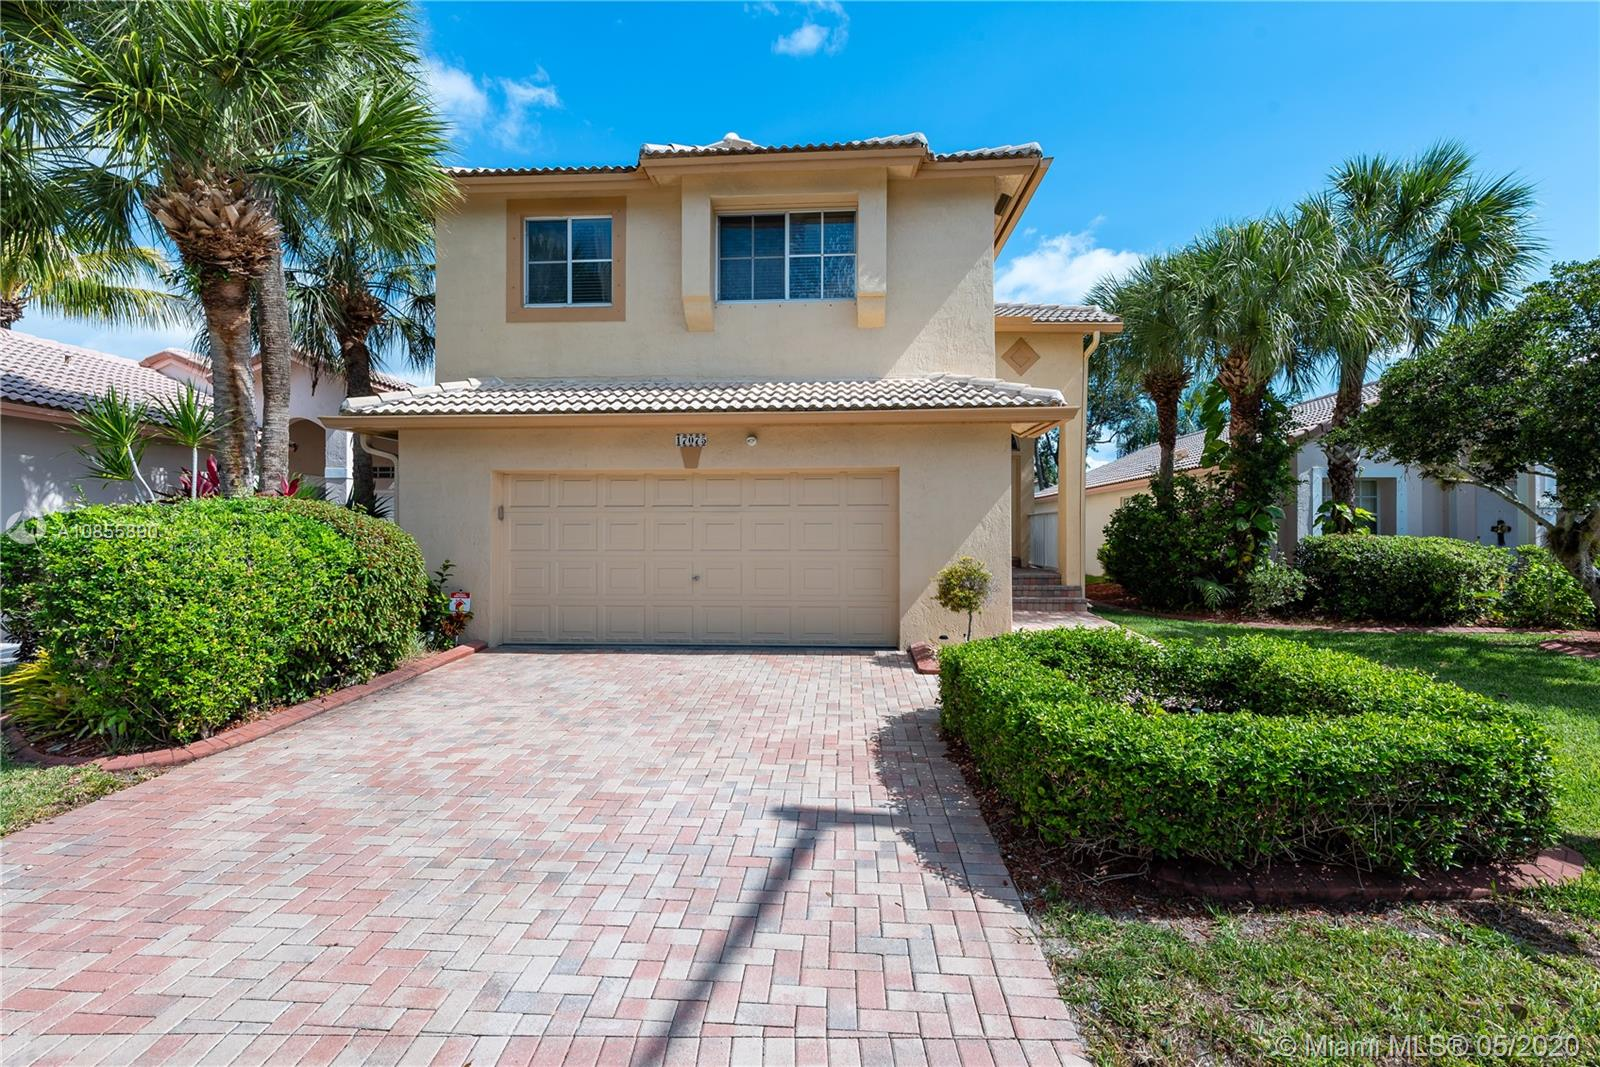 "Highly Desirable 3 Bedroom, 2.5 Bath, BOUGAINVILLAEA MODEL HOME in the Sought After RESERVE at PEMBROKE ISLES. Featuring: Large Open Eat-in Kitchen with Serving Bar and Pantry, Spacious 2nd FL Master Suite, Large Walk-in Closet, Dual Sink Vanity, Roman Soaking Tub, Neutral Flooring, Vaulted Ceilings, Open Patio, Fenced Lot and Tropical Landscaping. The Perfect Family Home…. Residents of Pembroke Isles Enjoy: Fitness Center, Aerobics, Sauna, Tennis, Racquetball, Basketball, Soccer, Beach Volleyball, Swimming Pools, Jacuzzis, Fishing Piers, Walking/Biking Trails, Covered Picnic Areas, Children's Playground & Tot Lot.  HOA Includes: Security, Landscaping, Cable, Internet & Alarm Monitoring.  Convenient to Shopping, Dining, Travel and ""A"" Rated Schools. Hurry Call Us Today!"